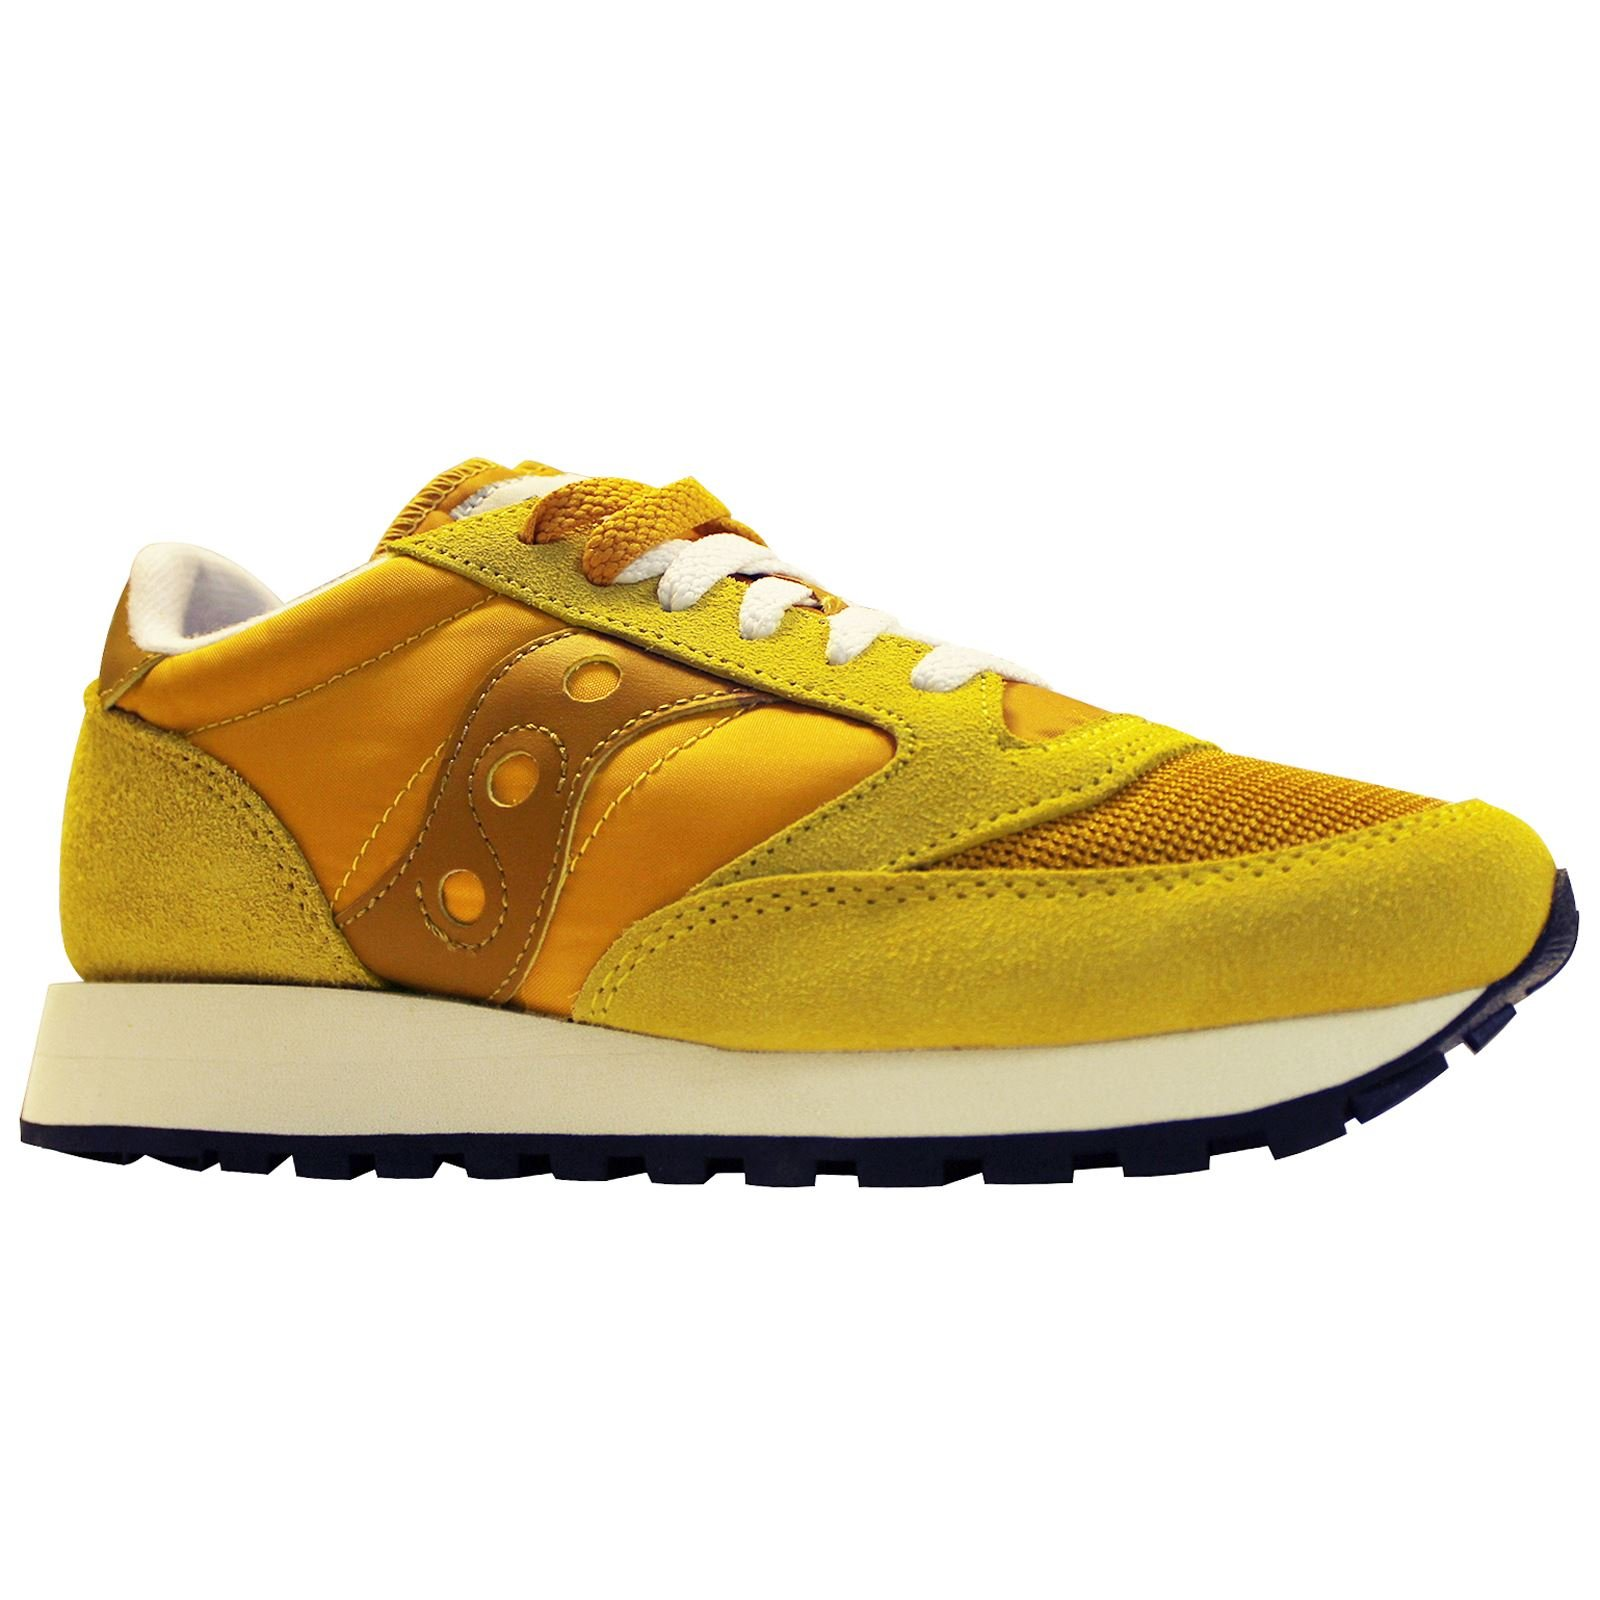 Saucony Womens Jazz Original Vintage S60368-29 Sun Suede Trainers 8 US by Saucony (Image #1)